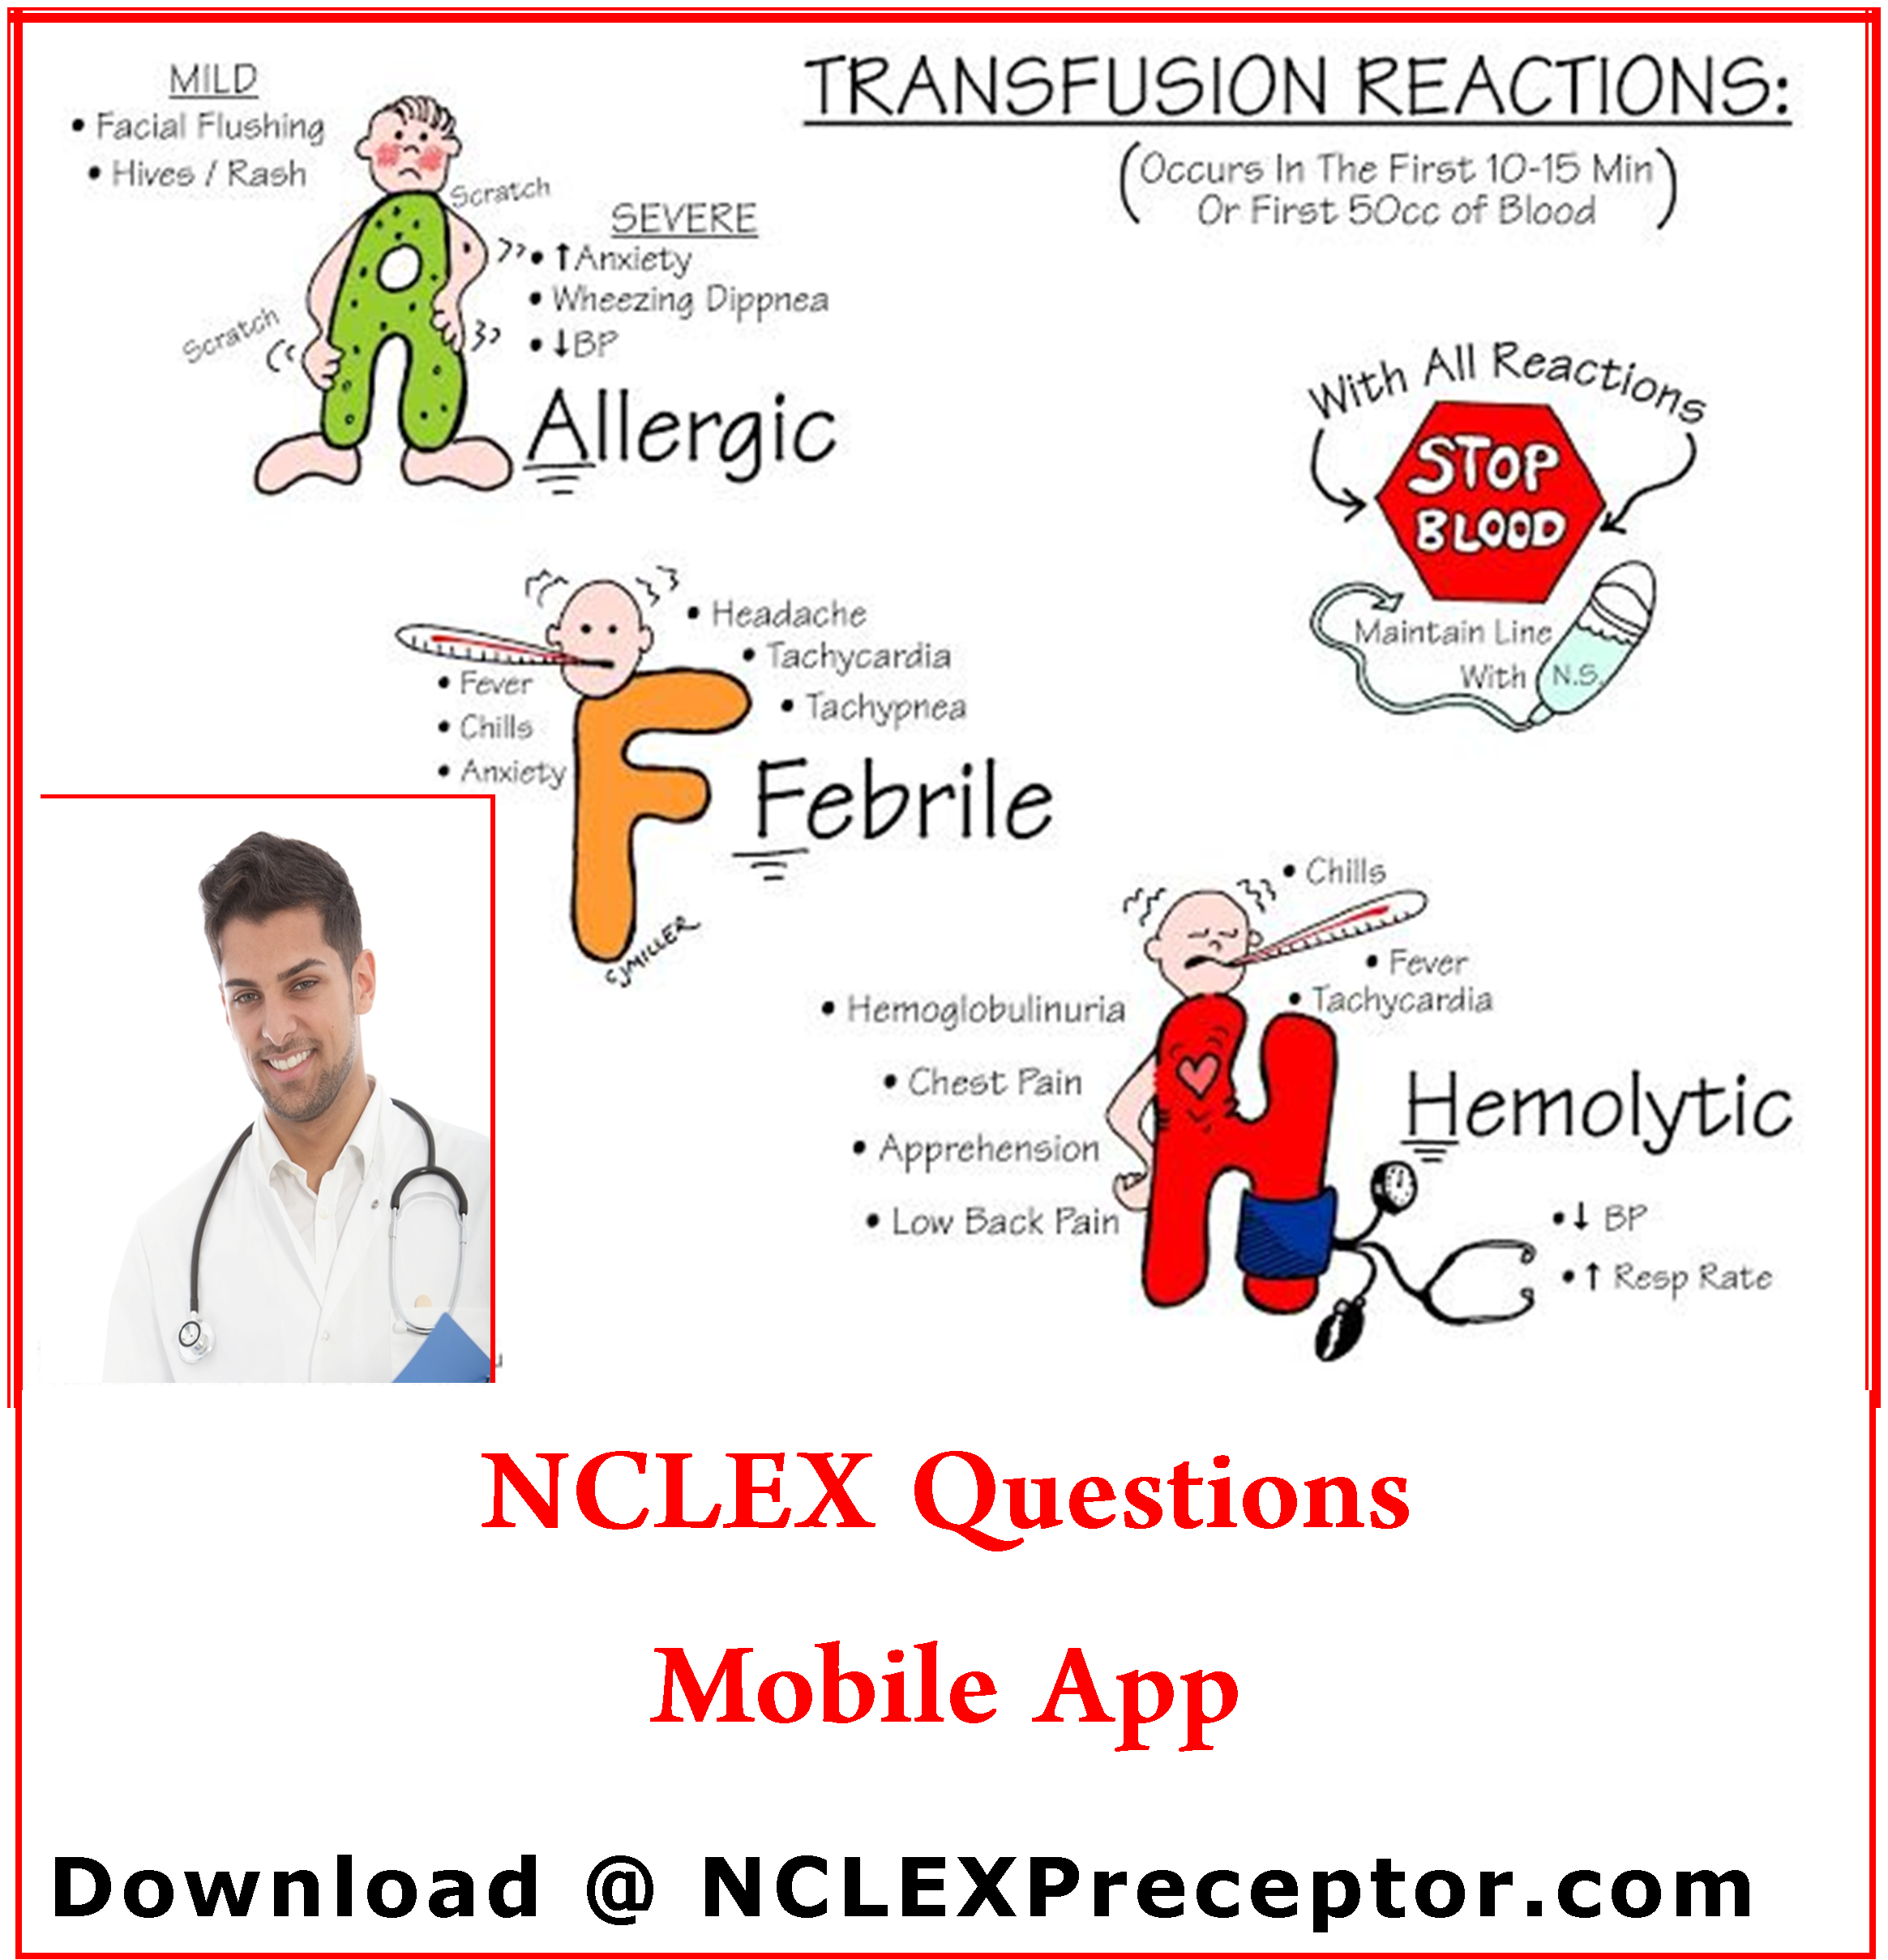 Nclex questions and test prep mobile app to help rn pass nclex nclex questions and test prep mobile app to help rn pass nclex exam free download 1betcityfo Choice Image